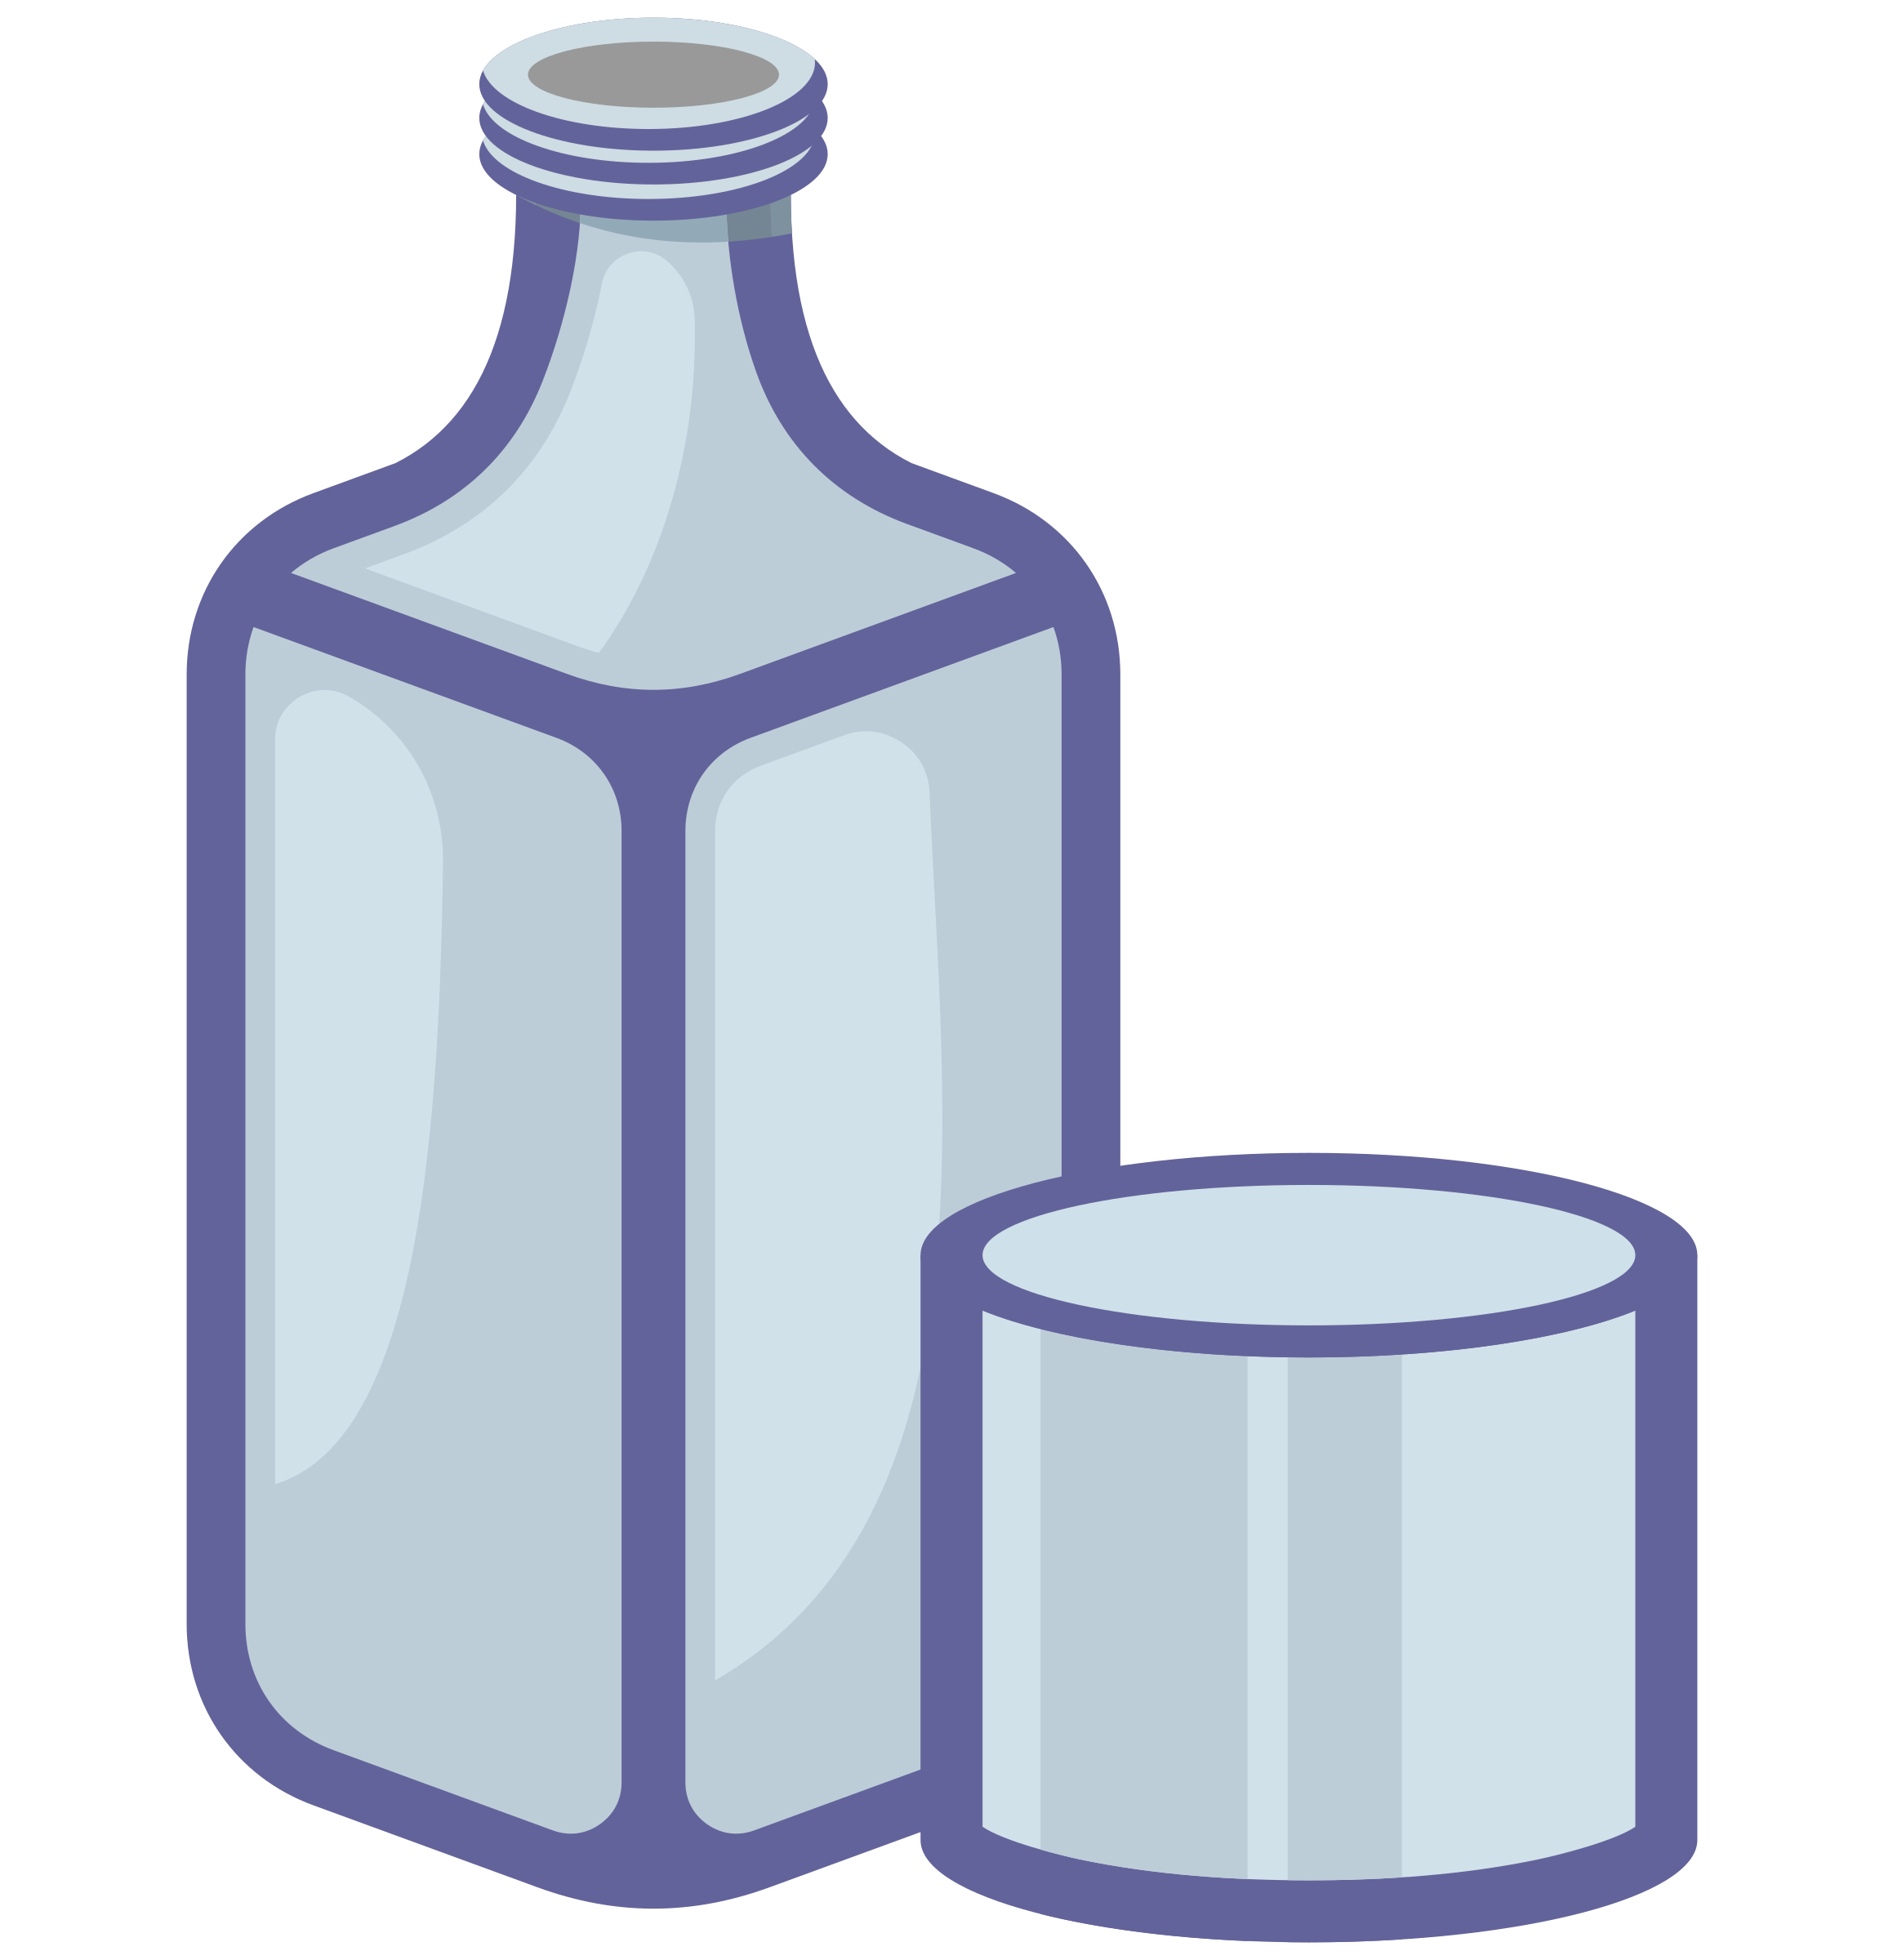 Glass clipart purple. Bottle and big image